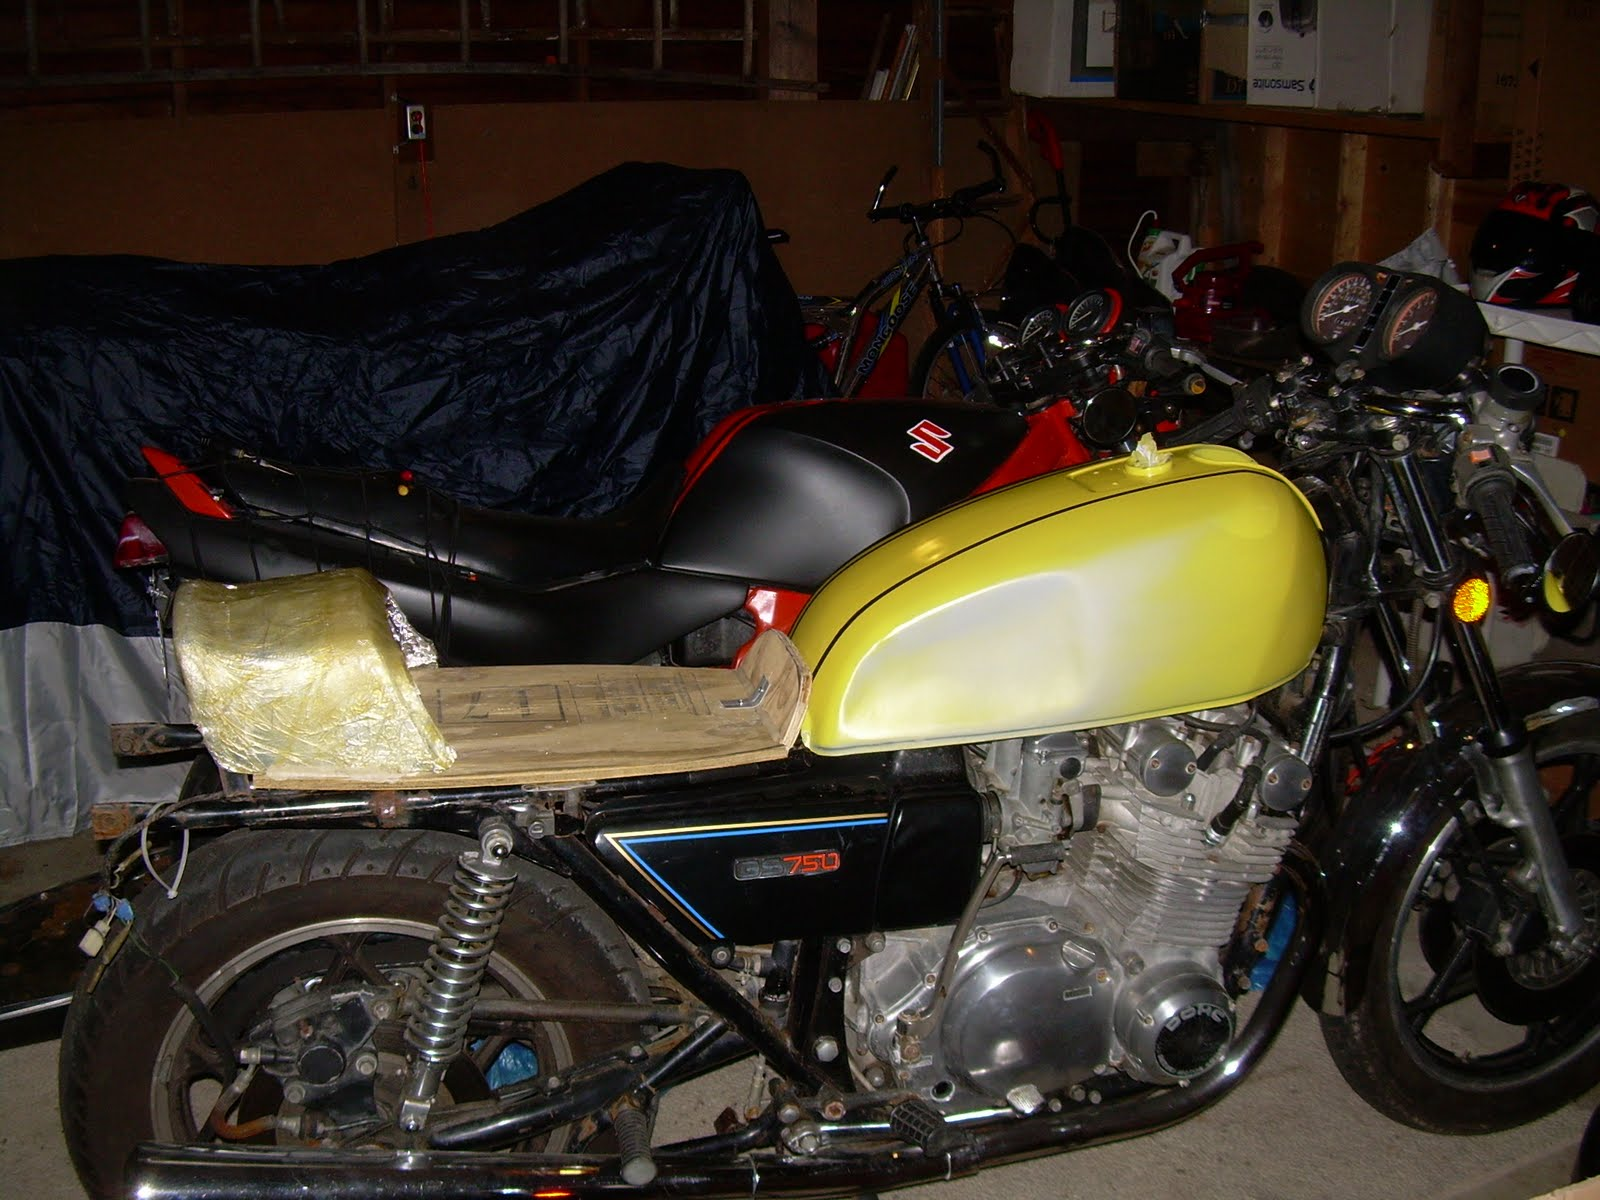 Build Shit Dude Suzuki Gs750 Cafe Mad Max Engine Diagram Here Is The Seat Glassed Puttied And Sanded With Beginnings Of A